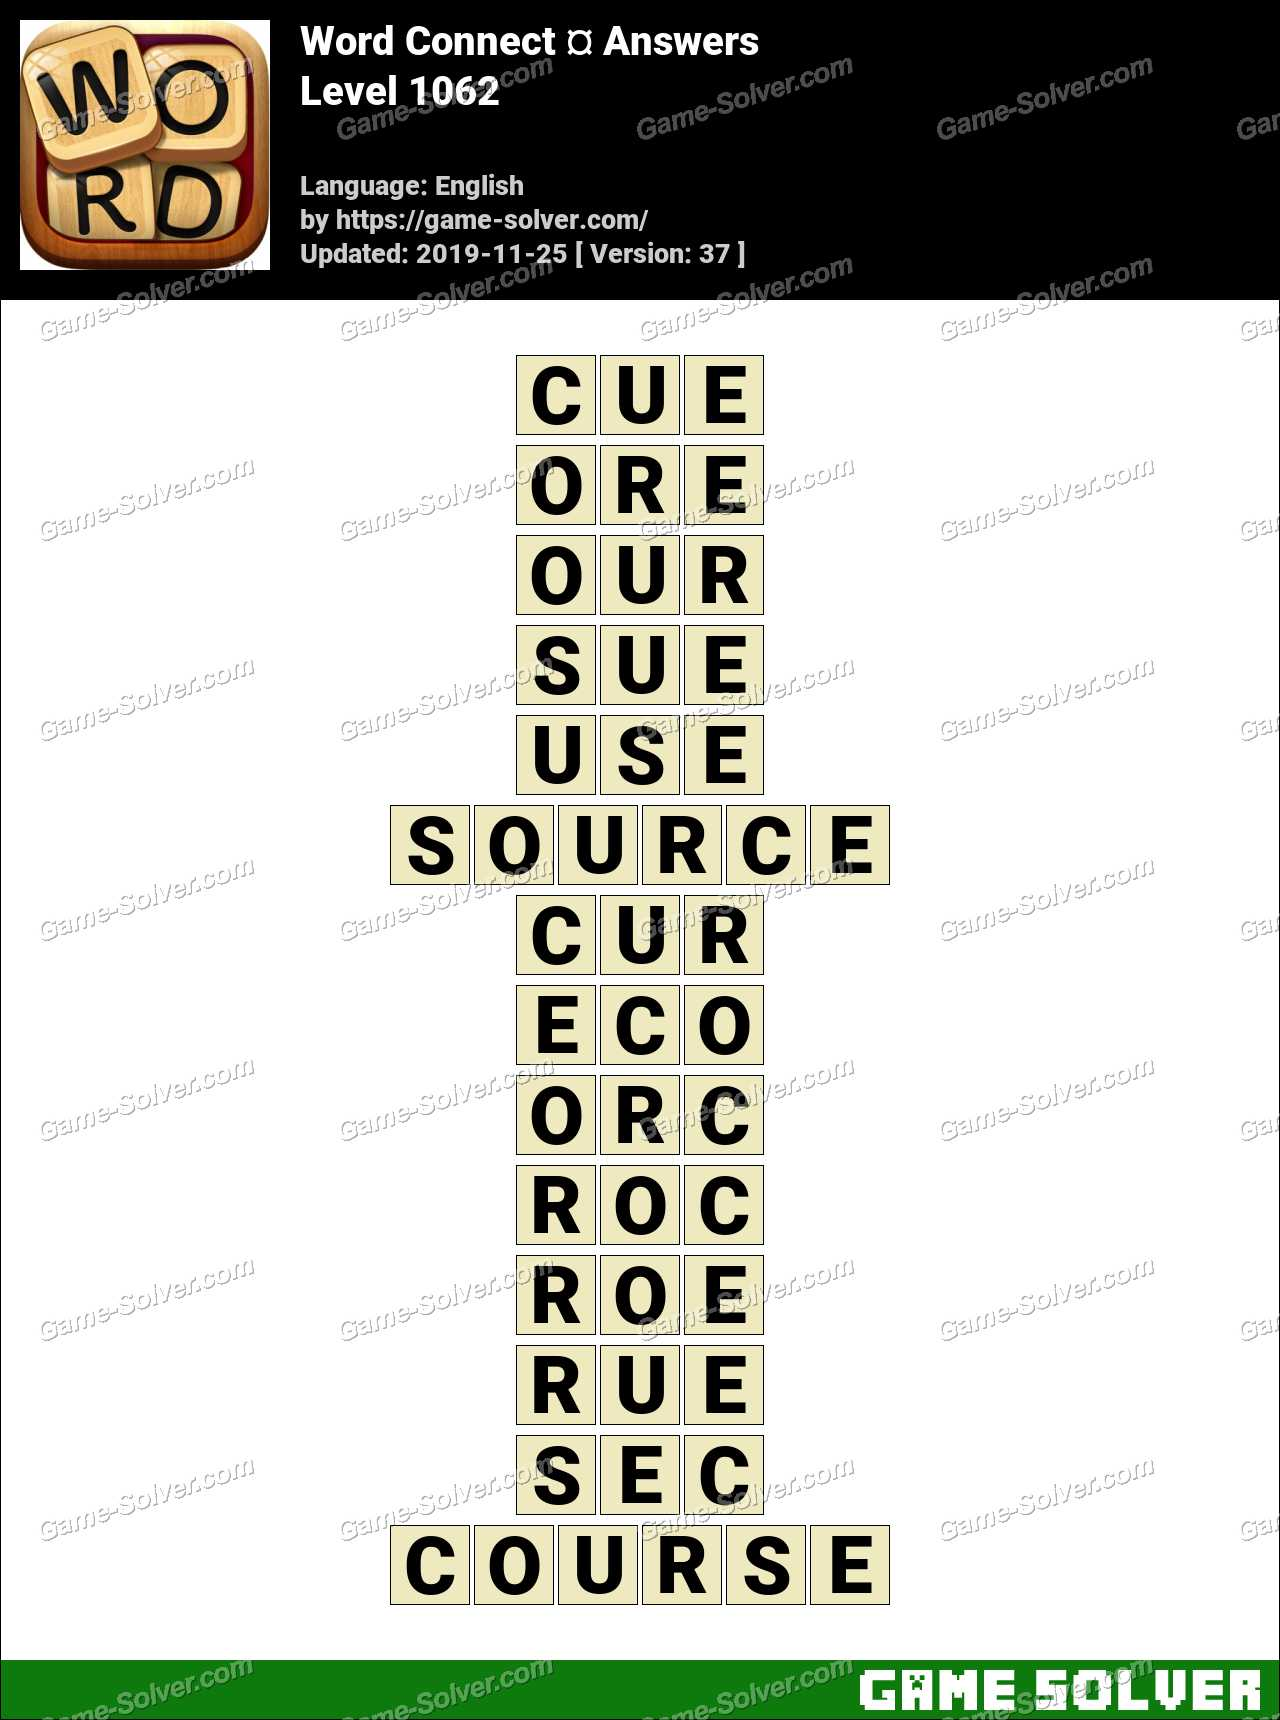 Word Connect Level 1062 Answers